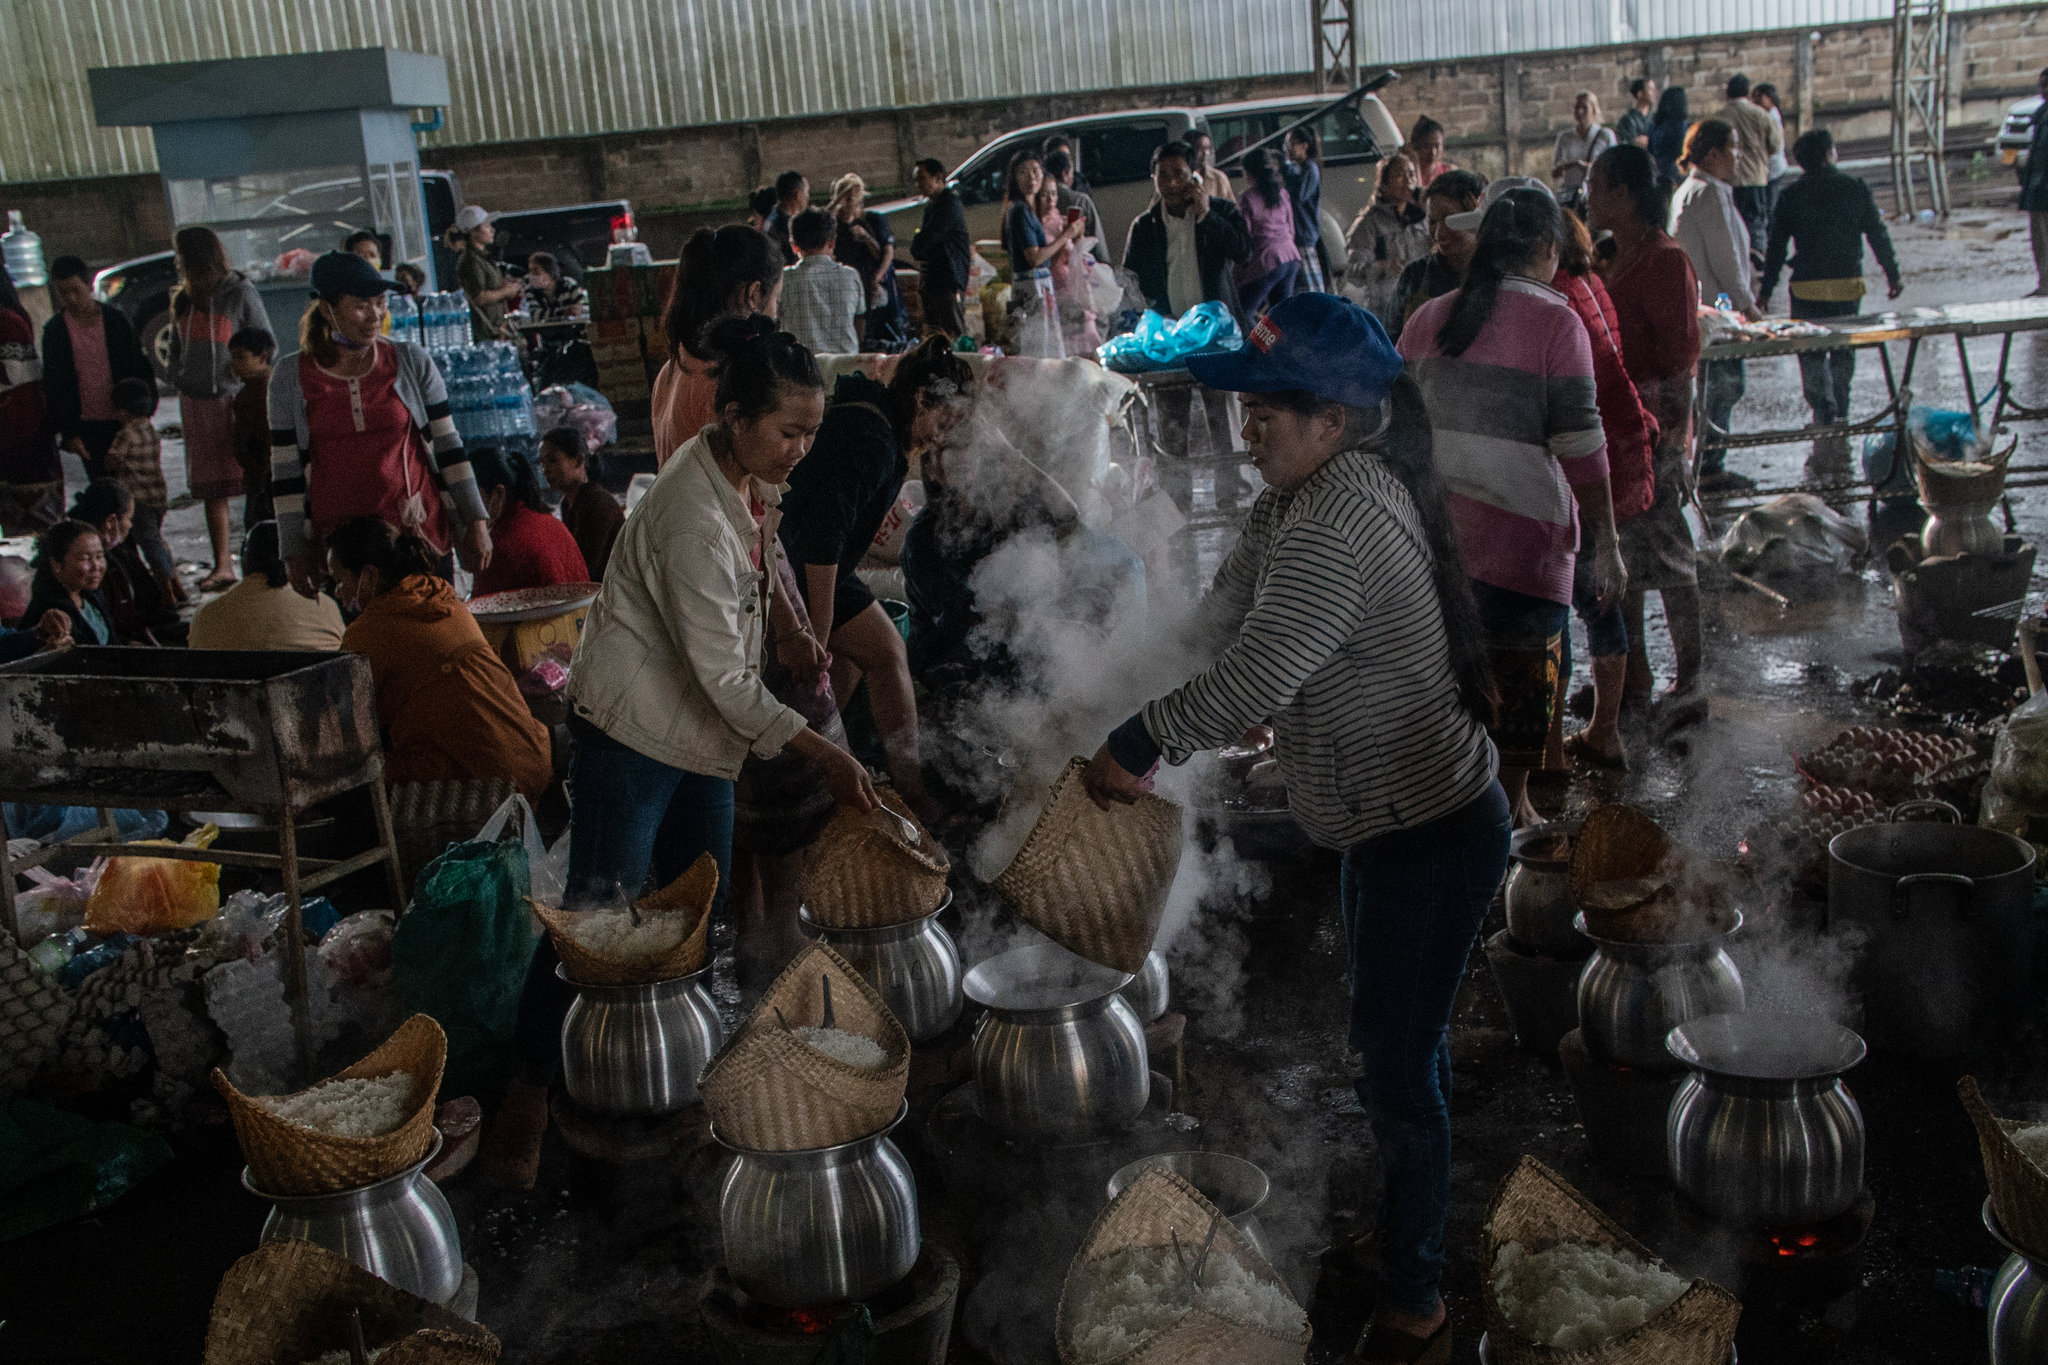 Volunteers preparing rice for people displaced by the dam collapse.CreditBen C. Solomon/The New York Times